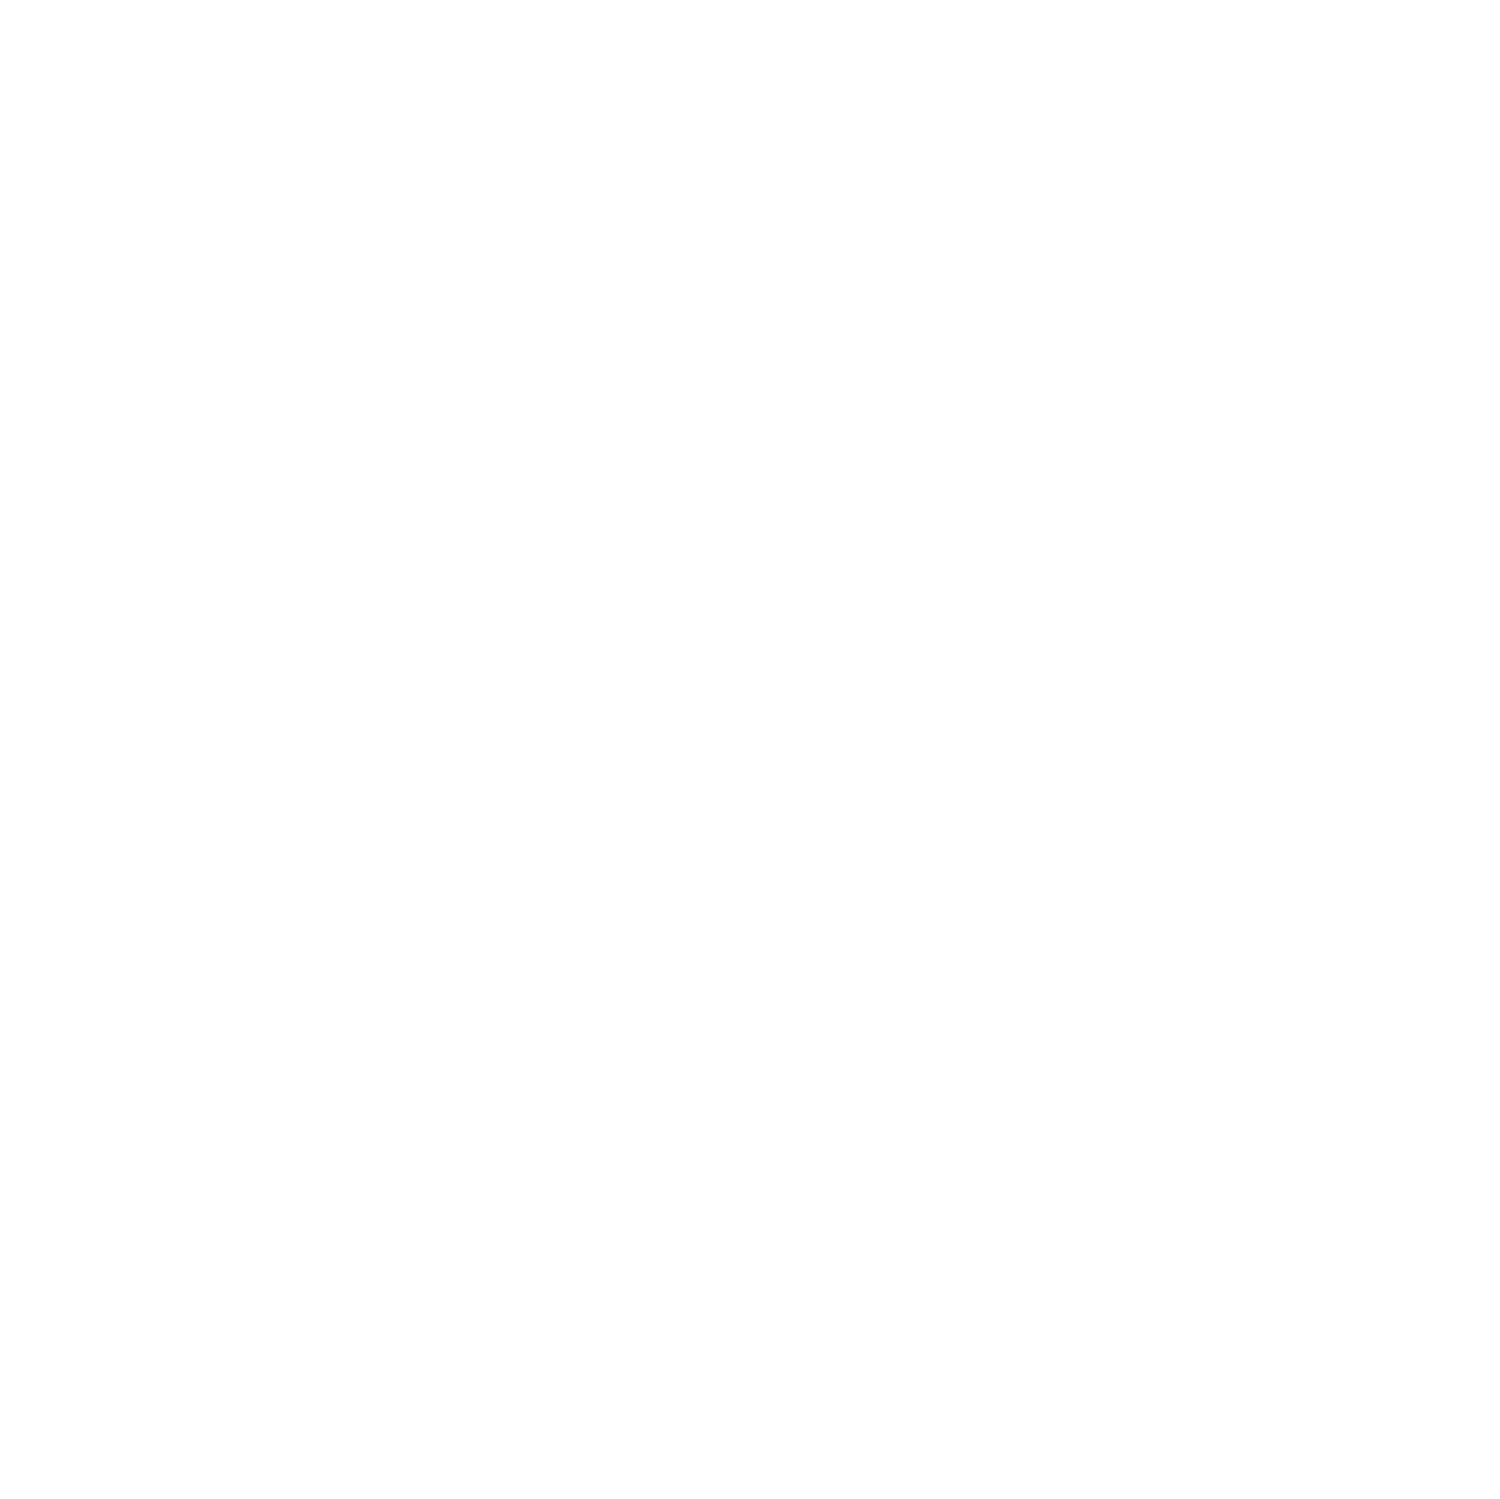 Tropicle Popsicle